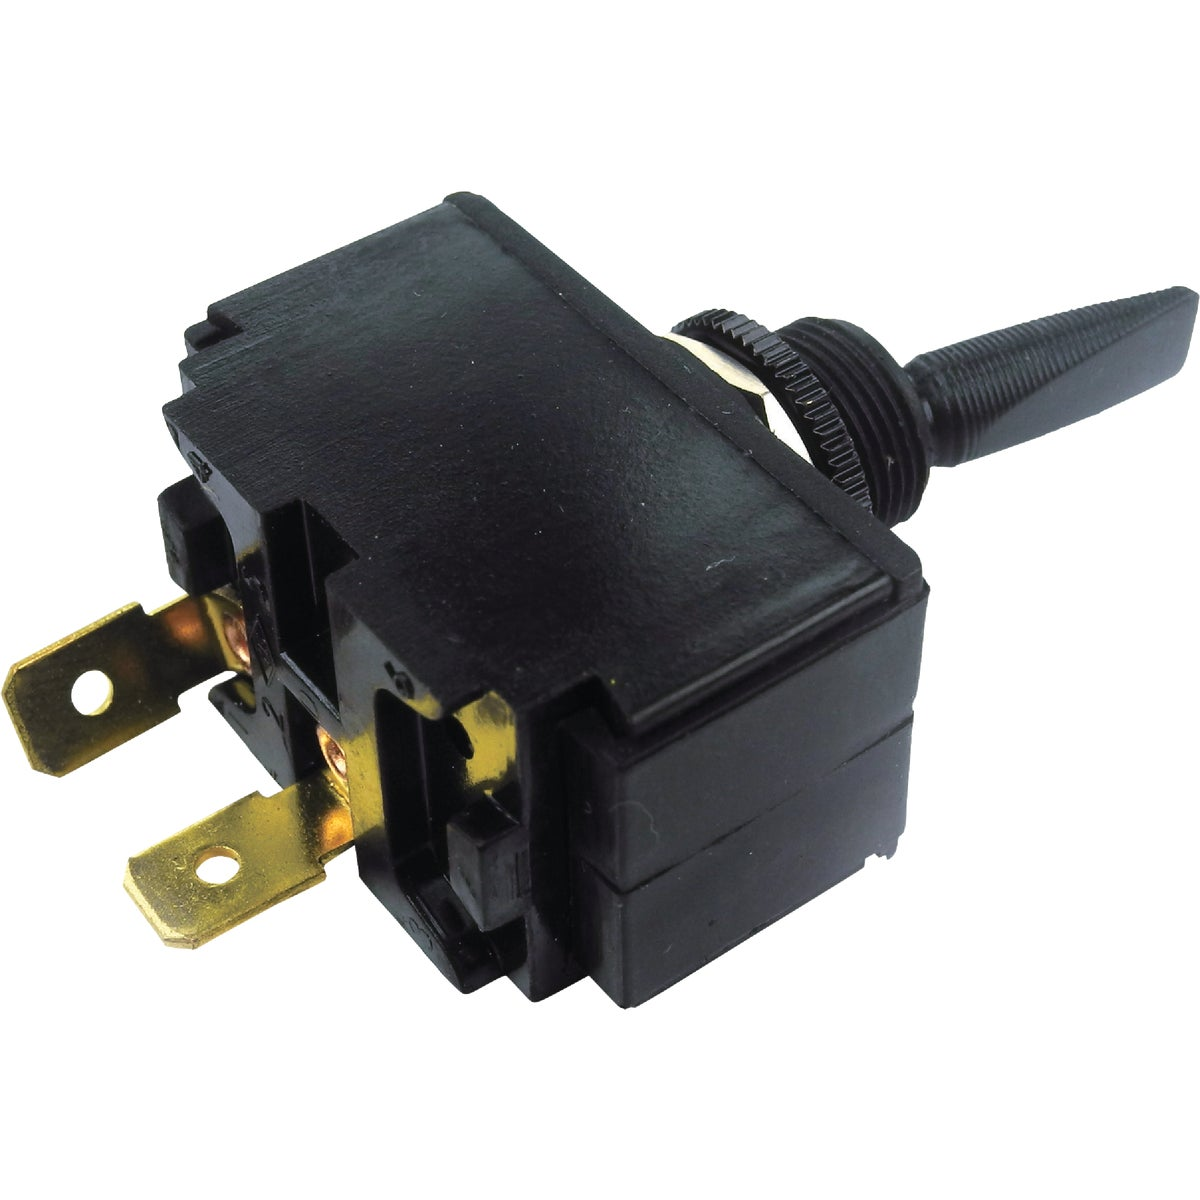 2POS TOGGLE SWITCH - 12001 by Seachoice Prod